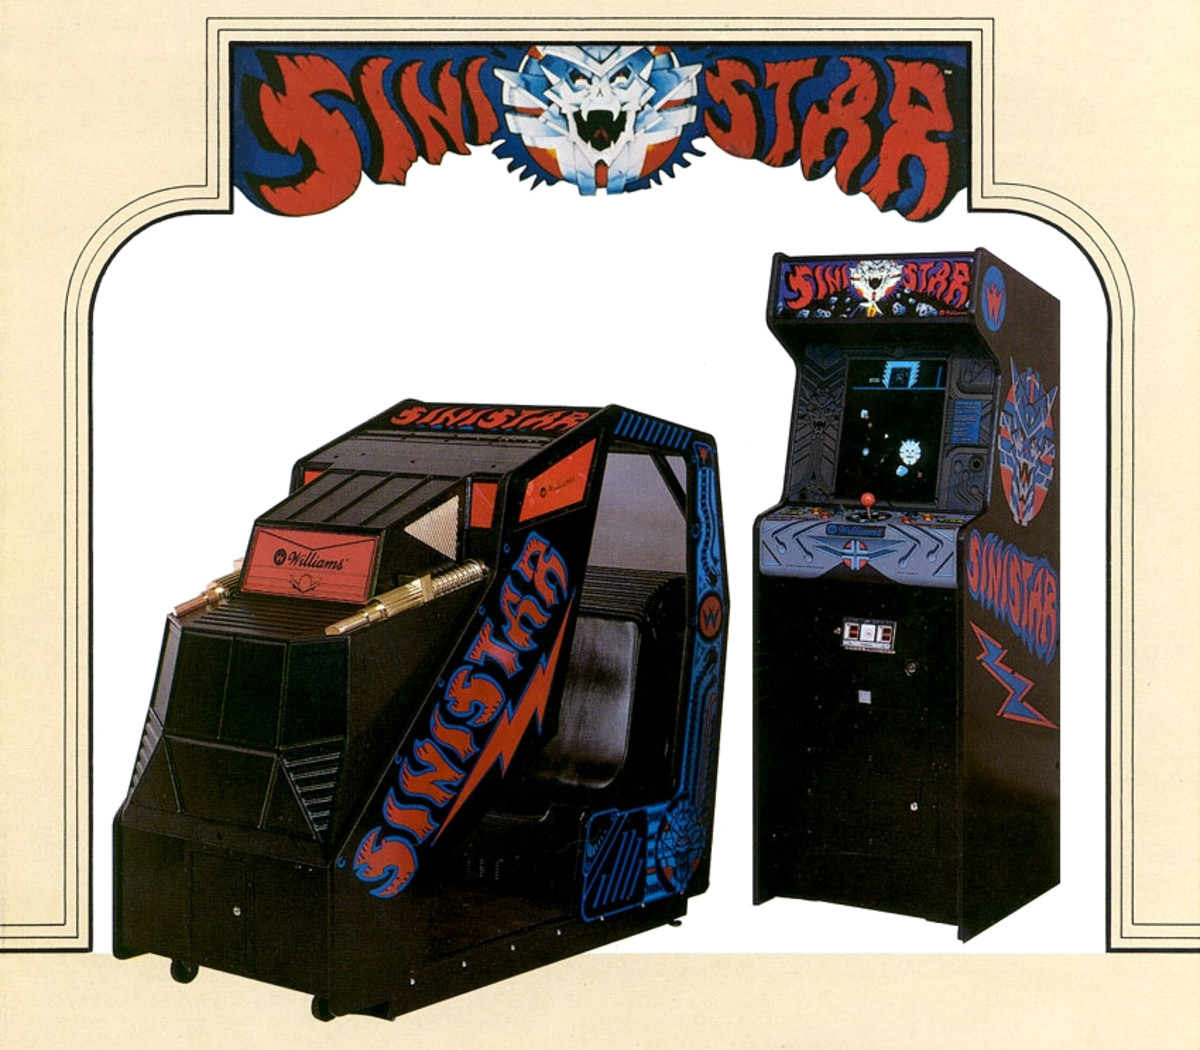 The cockpit cabinet for Sinistar (1983), shown next to its upright counterpart.